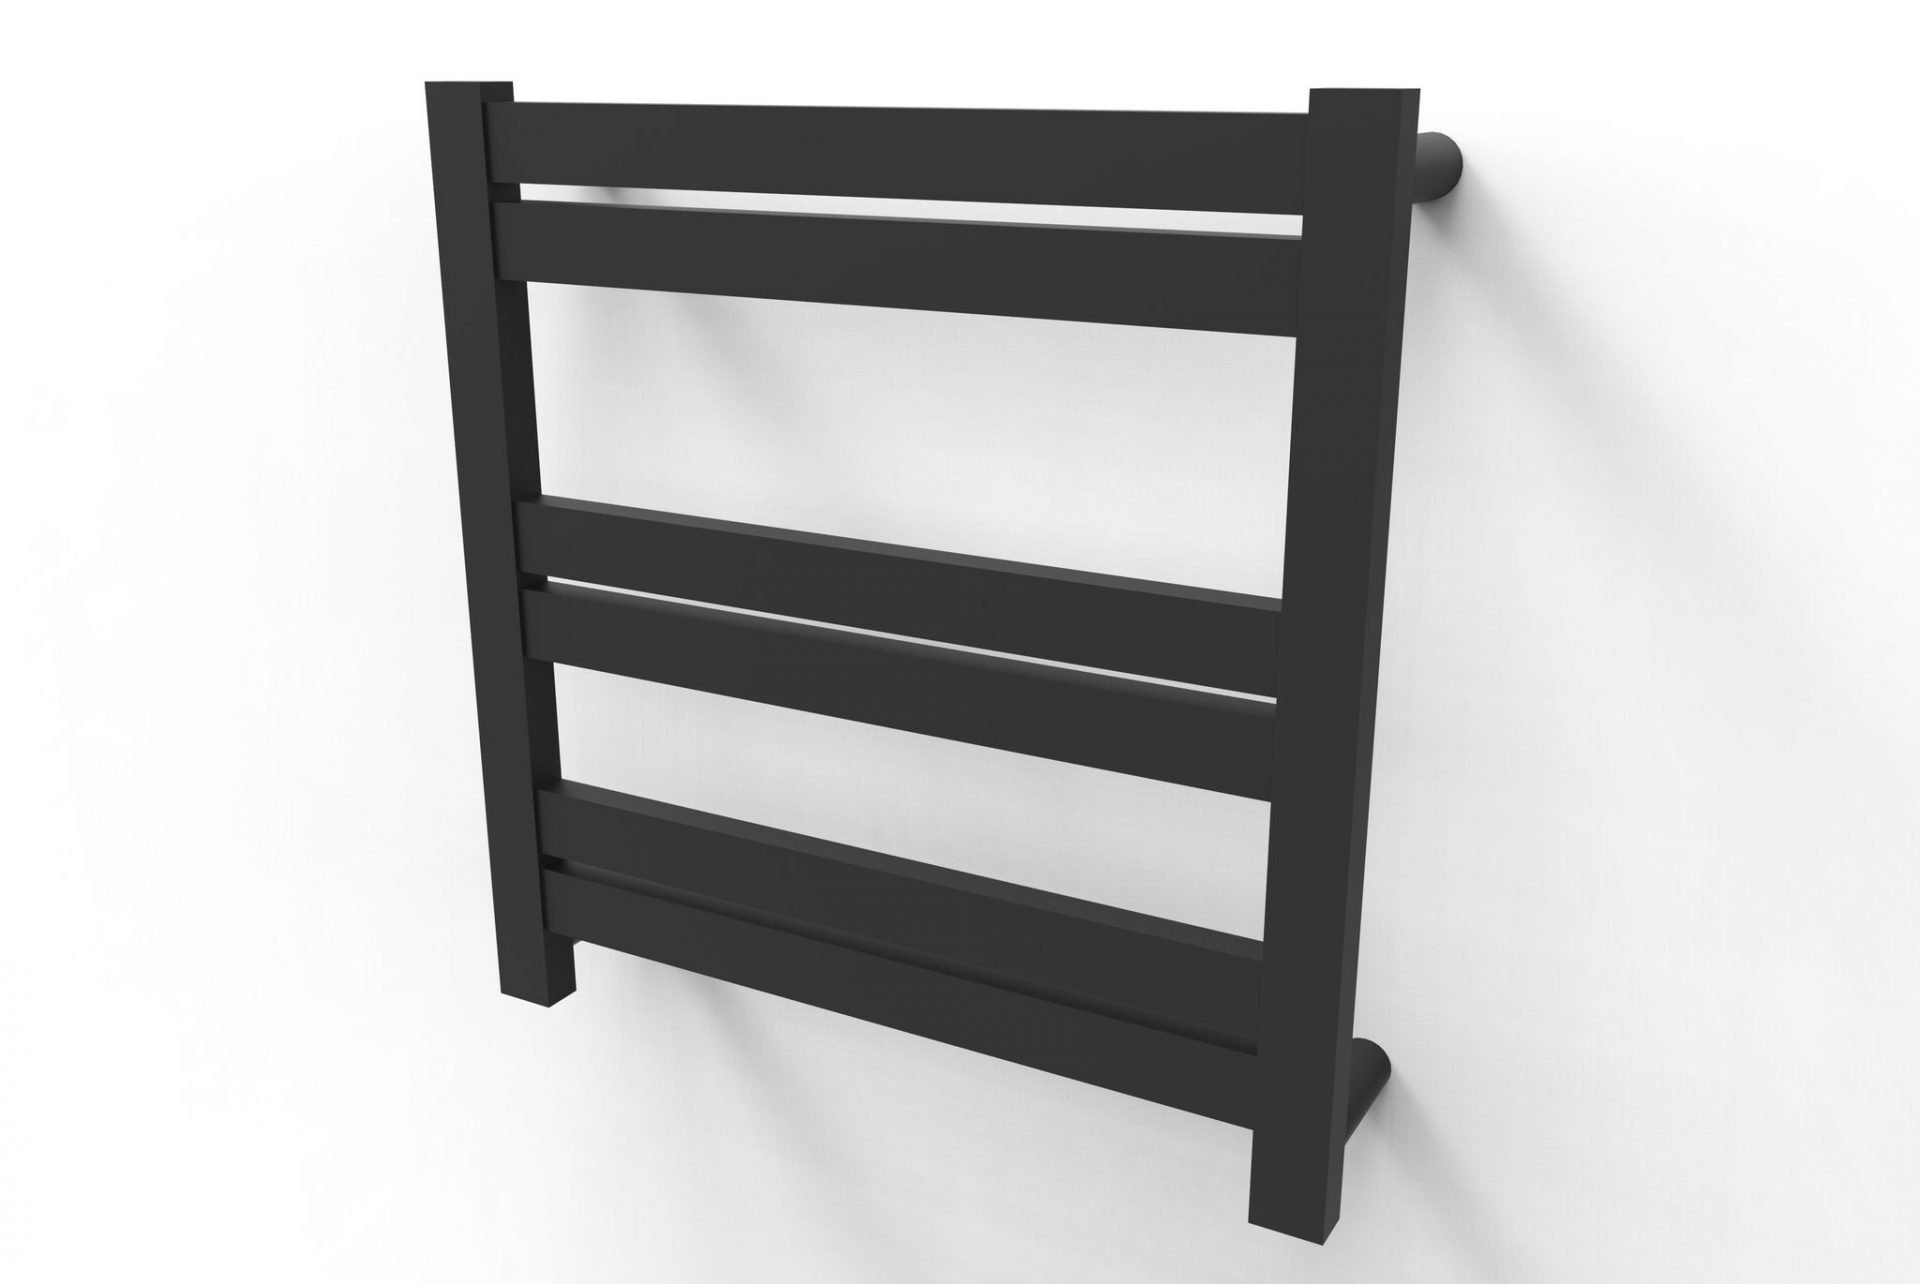 Siena Matte Black 6 Bar Heated Towel Rail